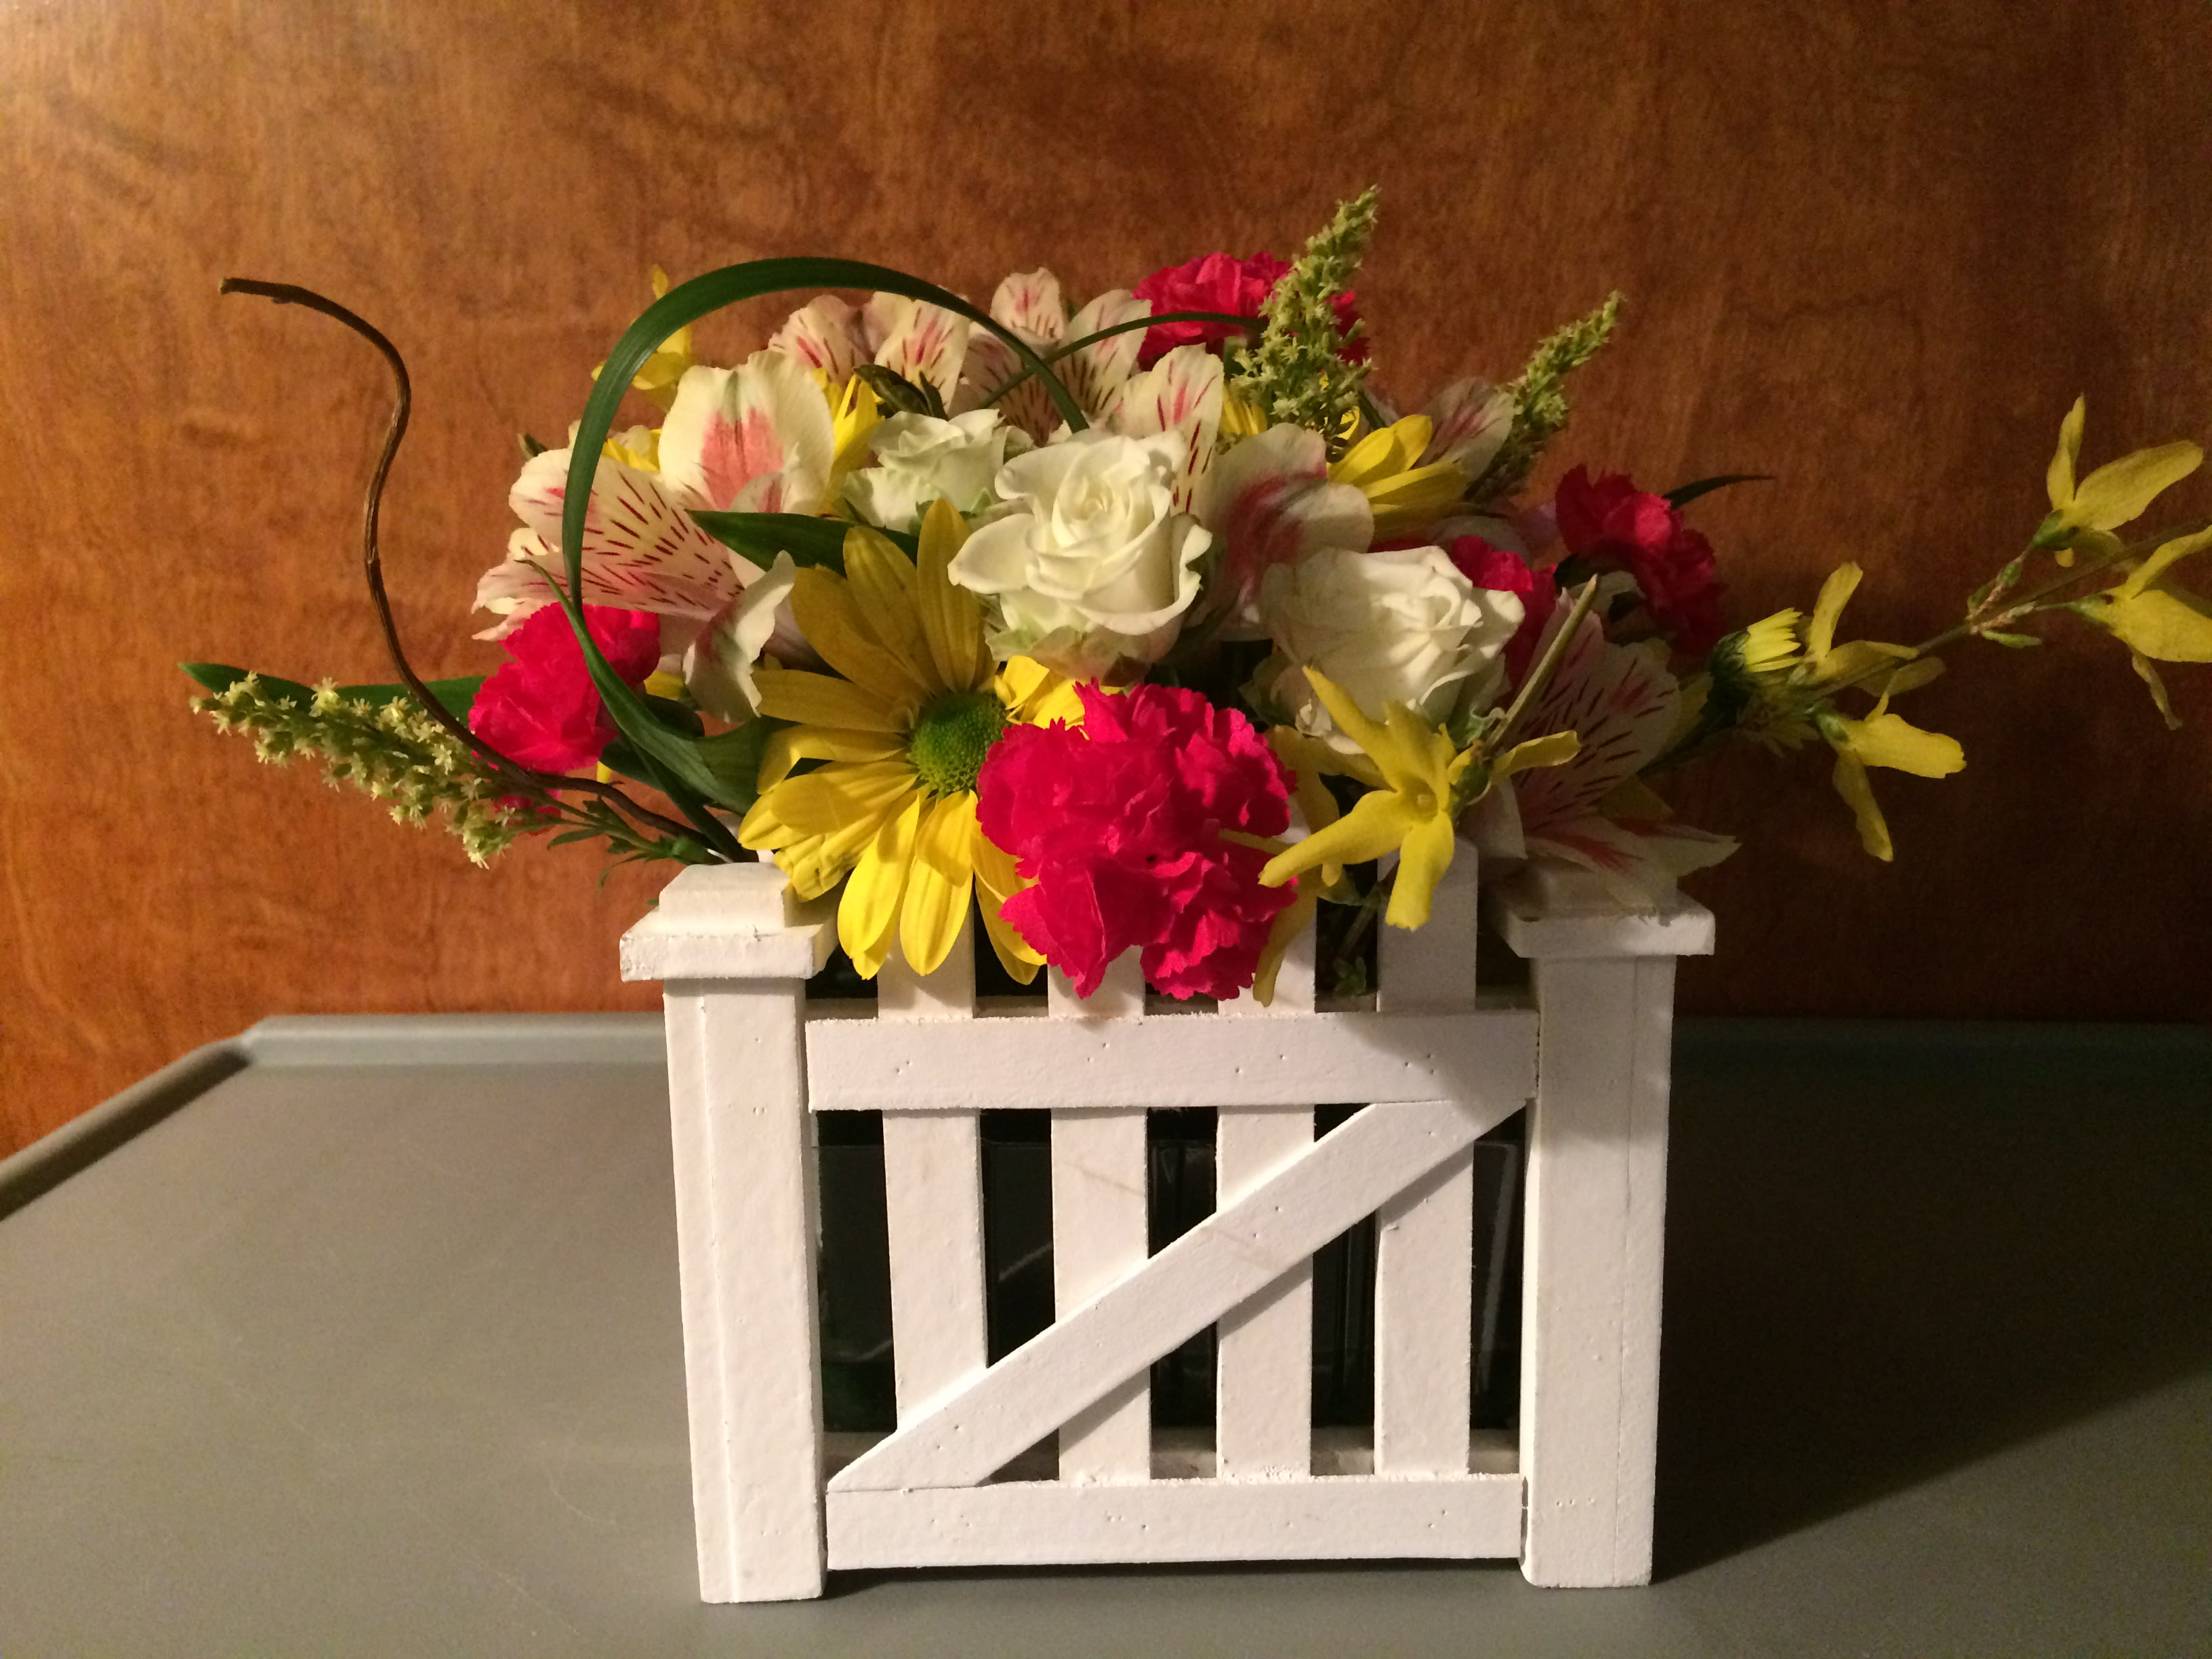 Meet me at the Garden Gate in Greenfield, WI | Kathy's 2nd Chance Plants,  LLC